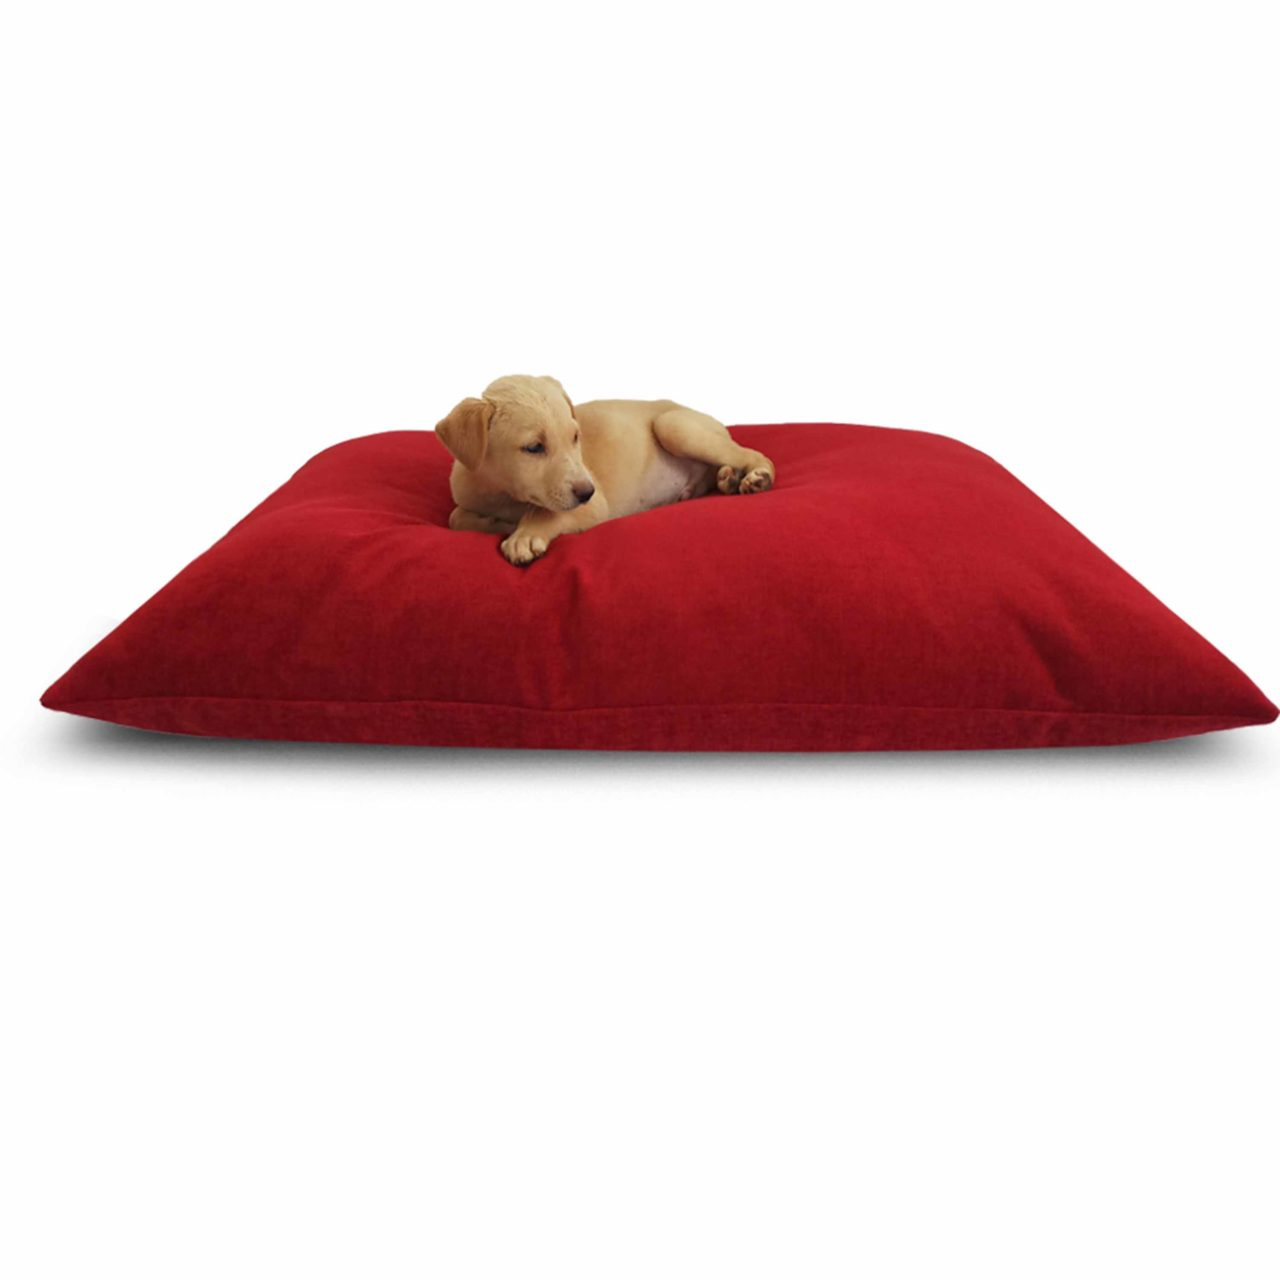 faux leather sofa india pillow back slipcovers dog bed | 30% discount buy now! @prazuchi